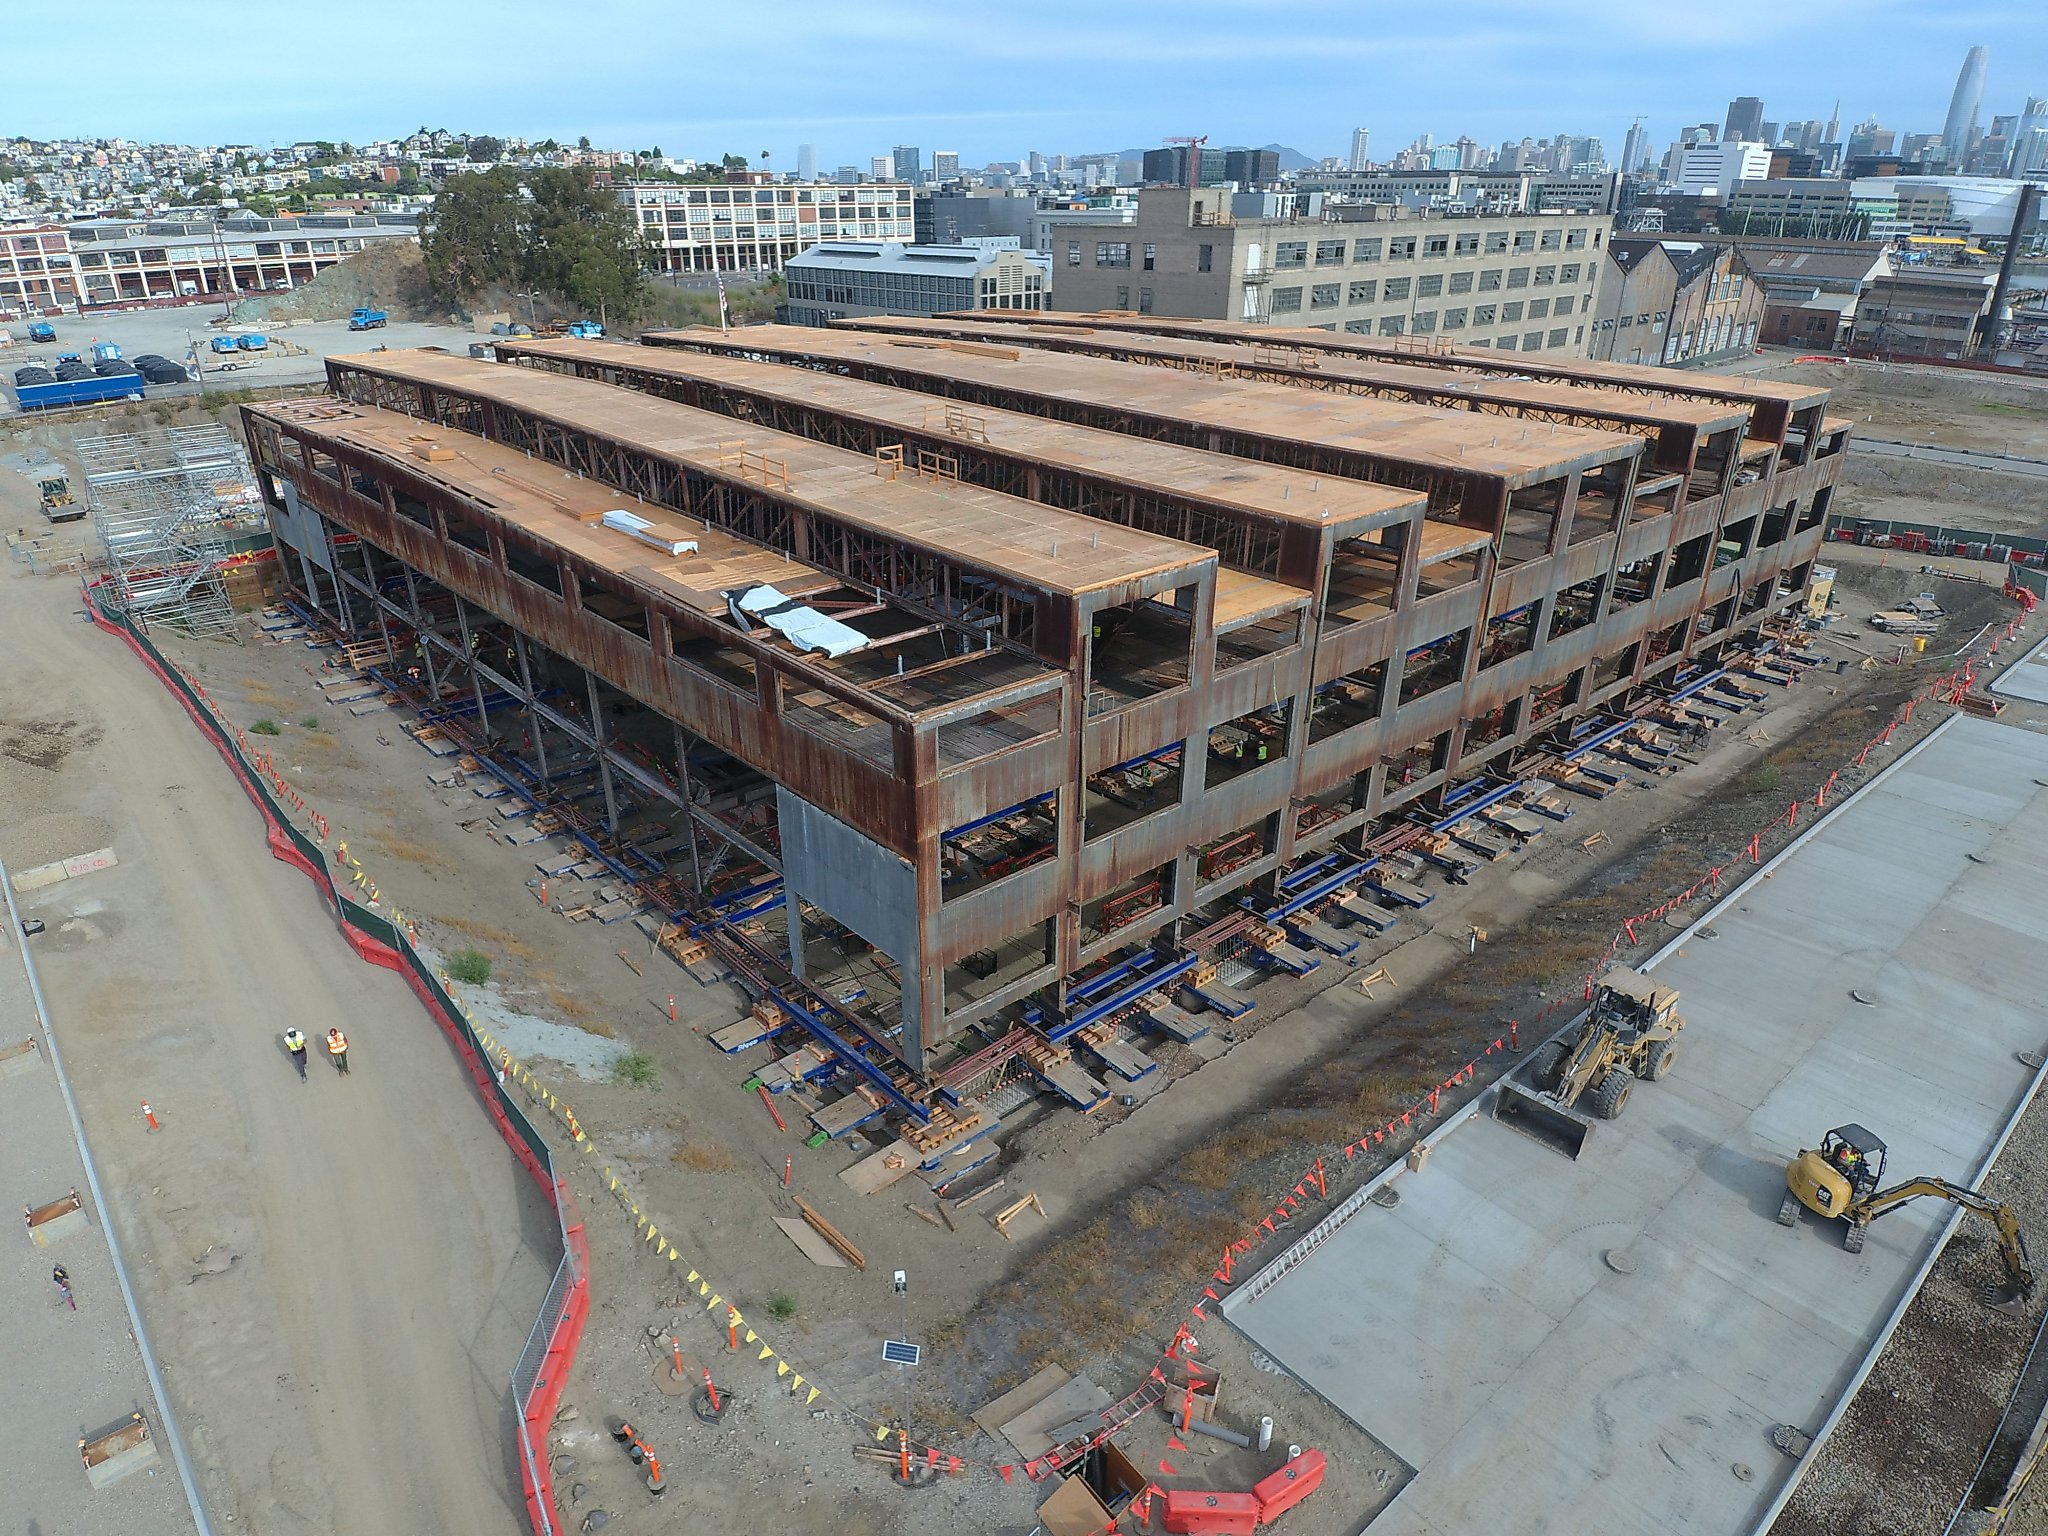 Sea-level rise means a 2,250-ton building lift at SF's Pier 70